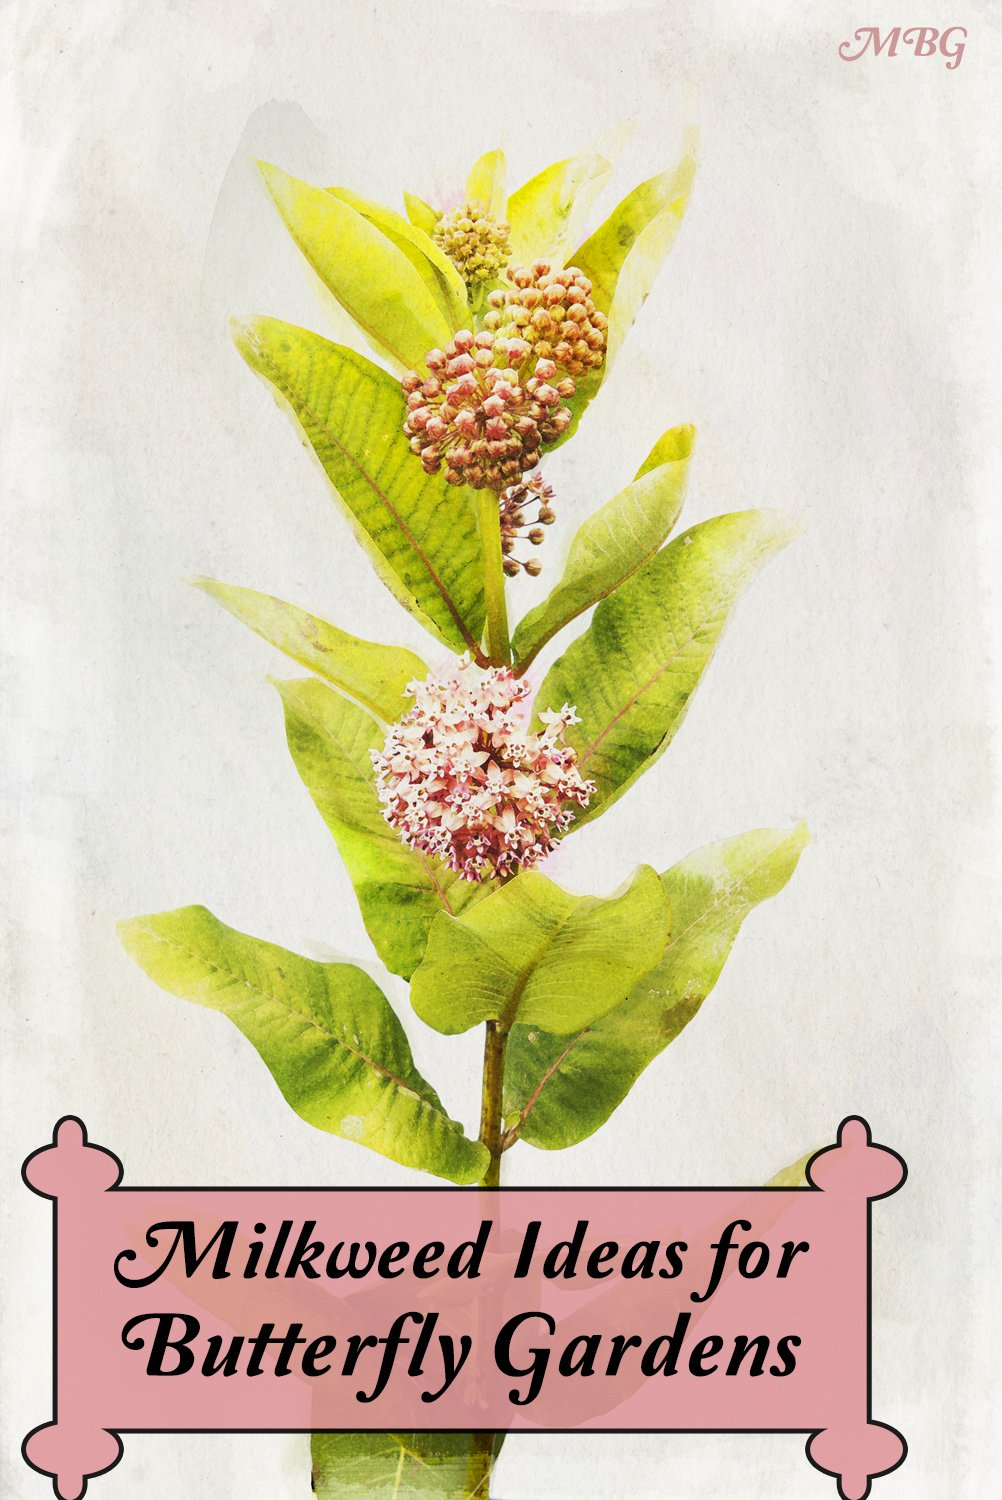 Butterfly Garden Ideas 25 milkweed plant ideas for supporting monarch butterflies caterpillars and other beneficial pollinators 25 Milkweed Plant Ideas For Supporting Monarch Butterflies Caterpillars And Other Beneficial Pollinators